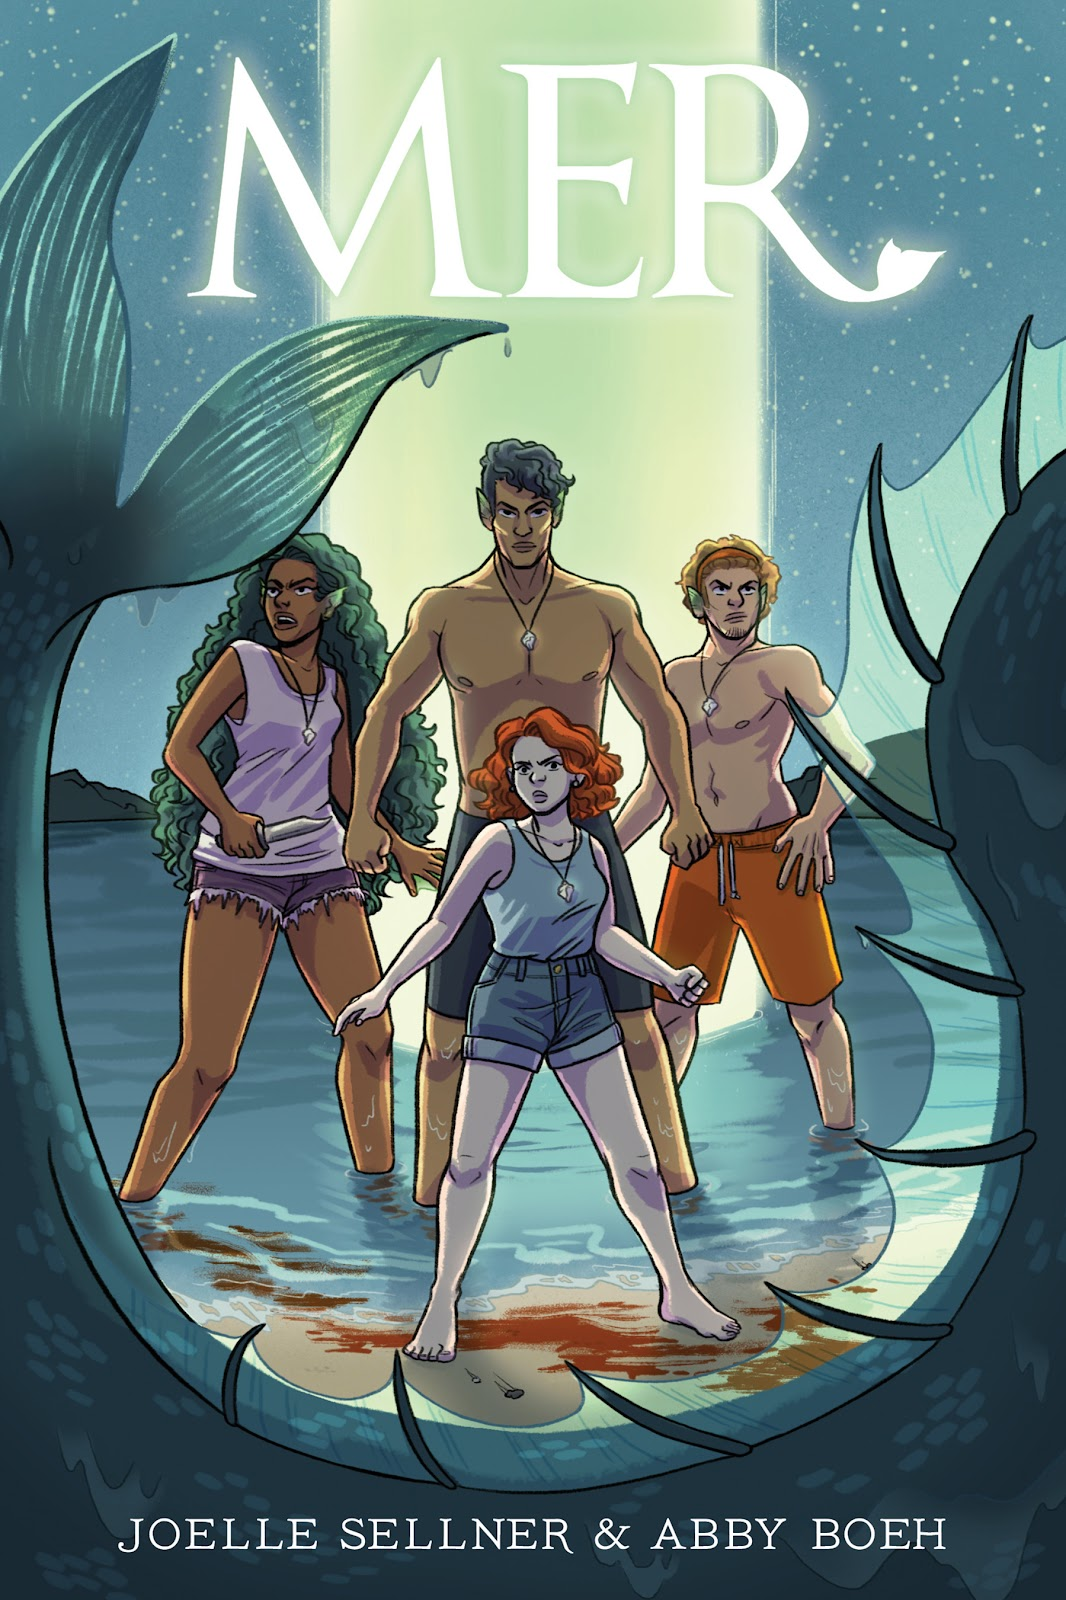 Read online Mer comic -  Issue # TPB - 1